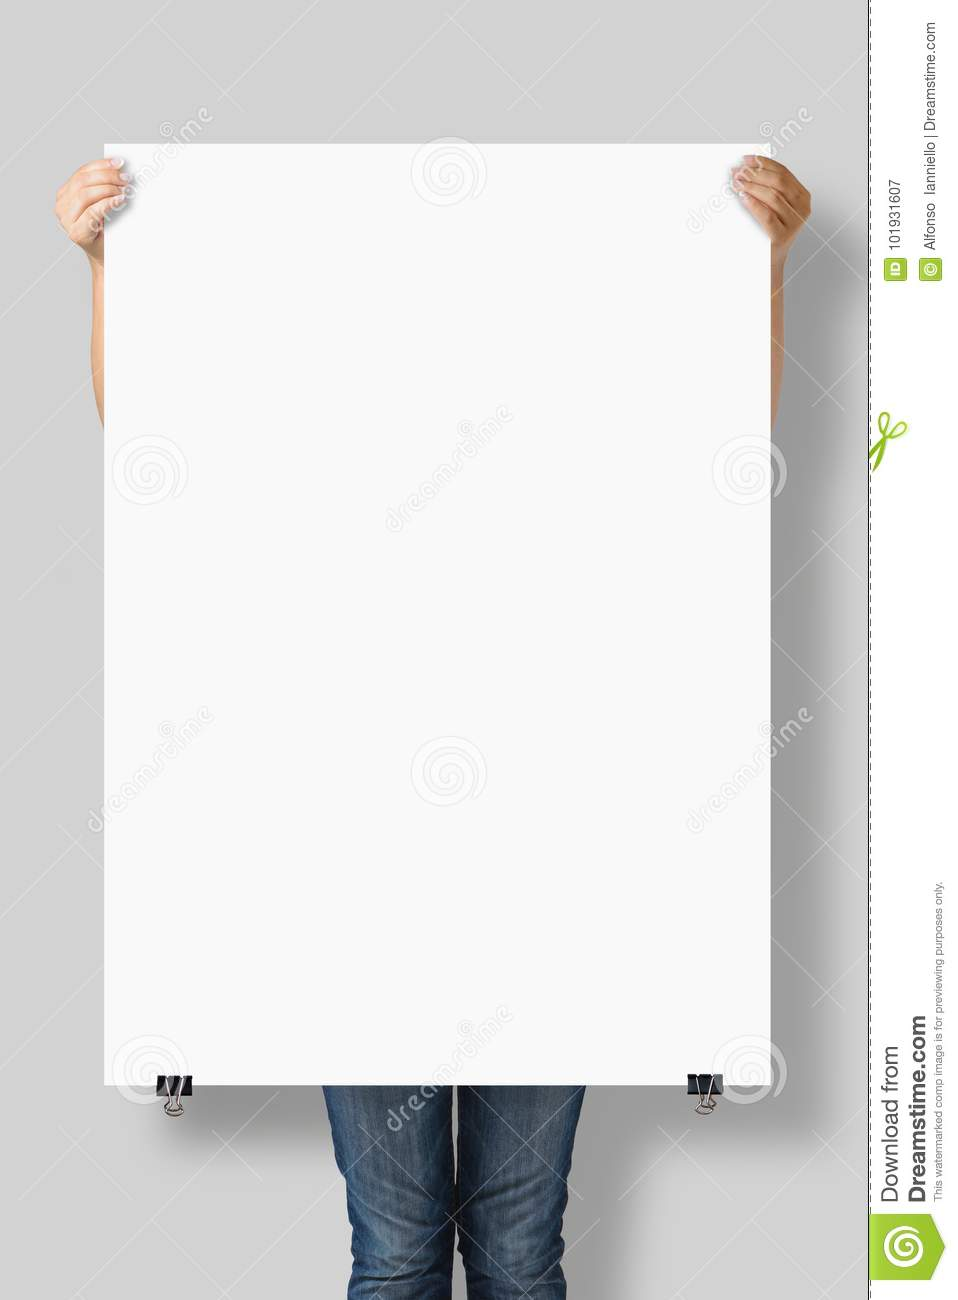 Poster A0 Woman Holding A Blank A0 Poster Mockup Stock Image Image Of